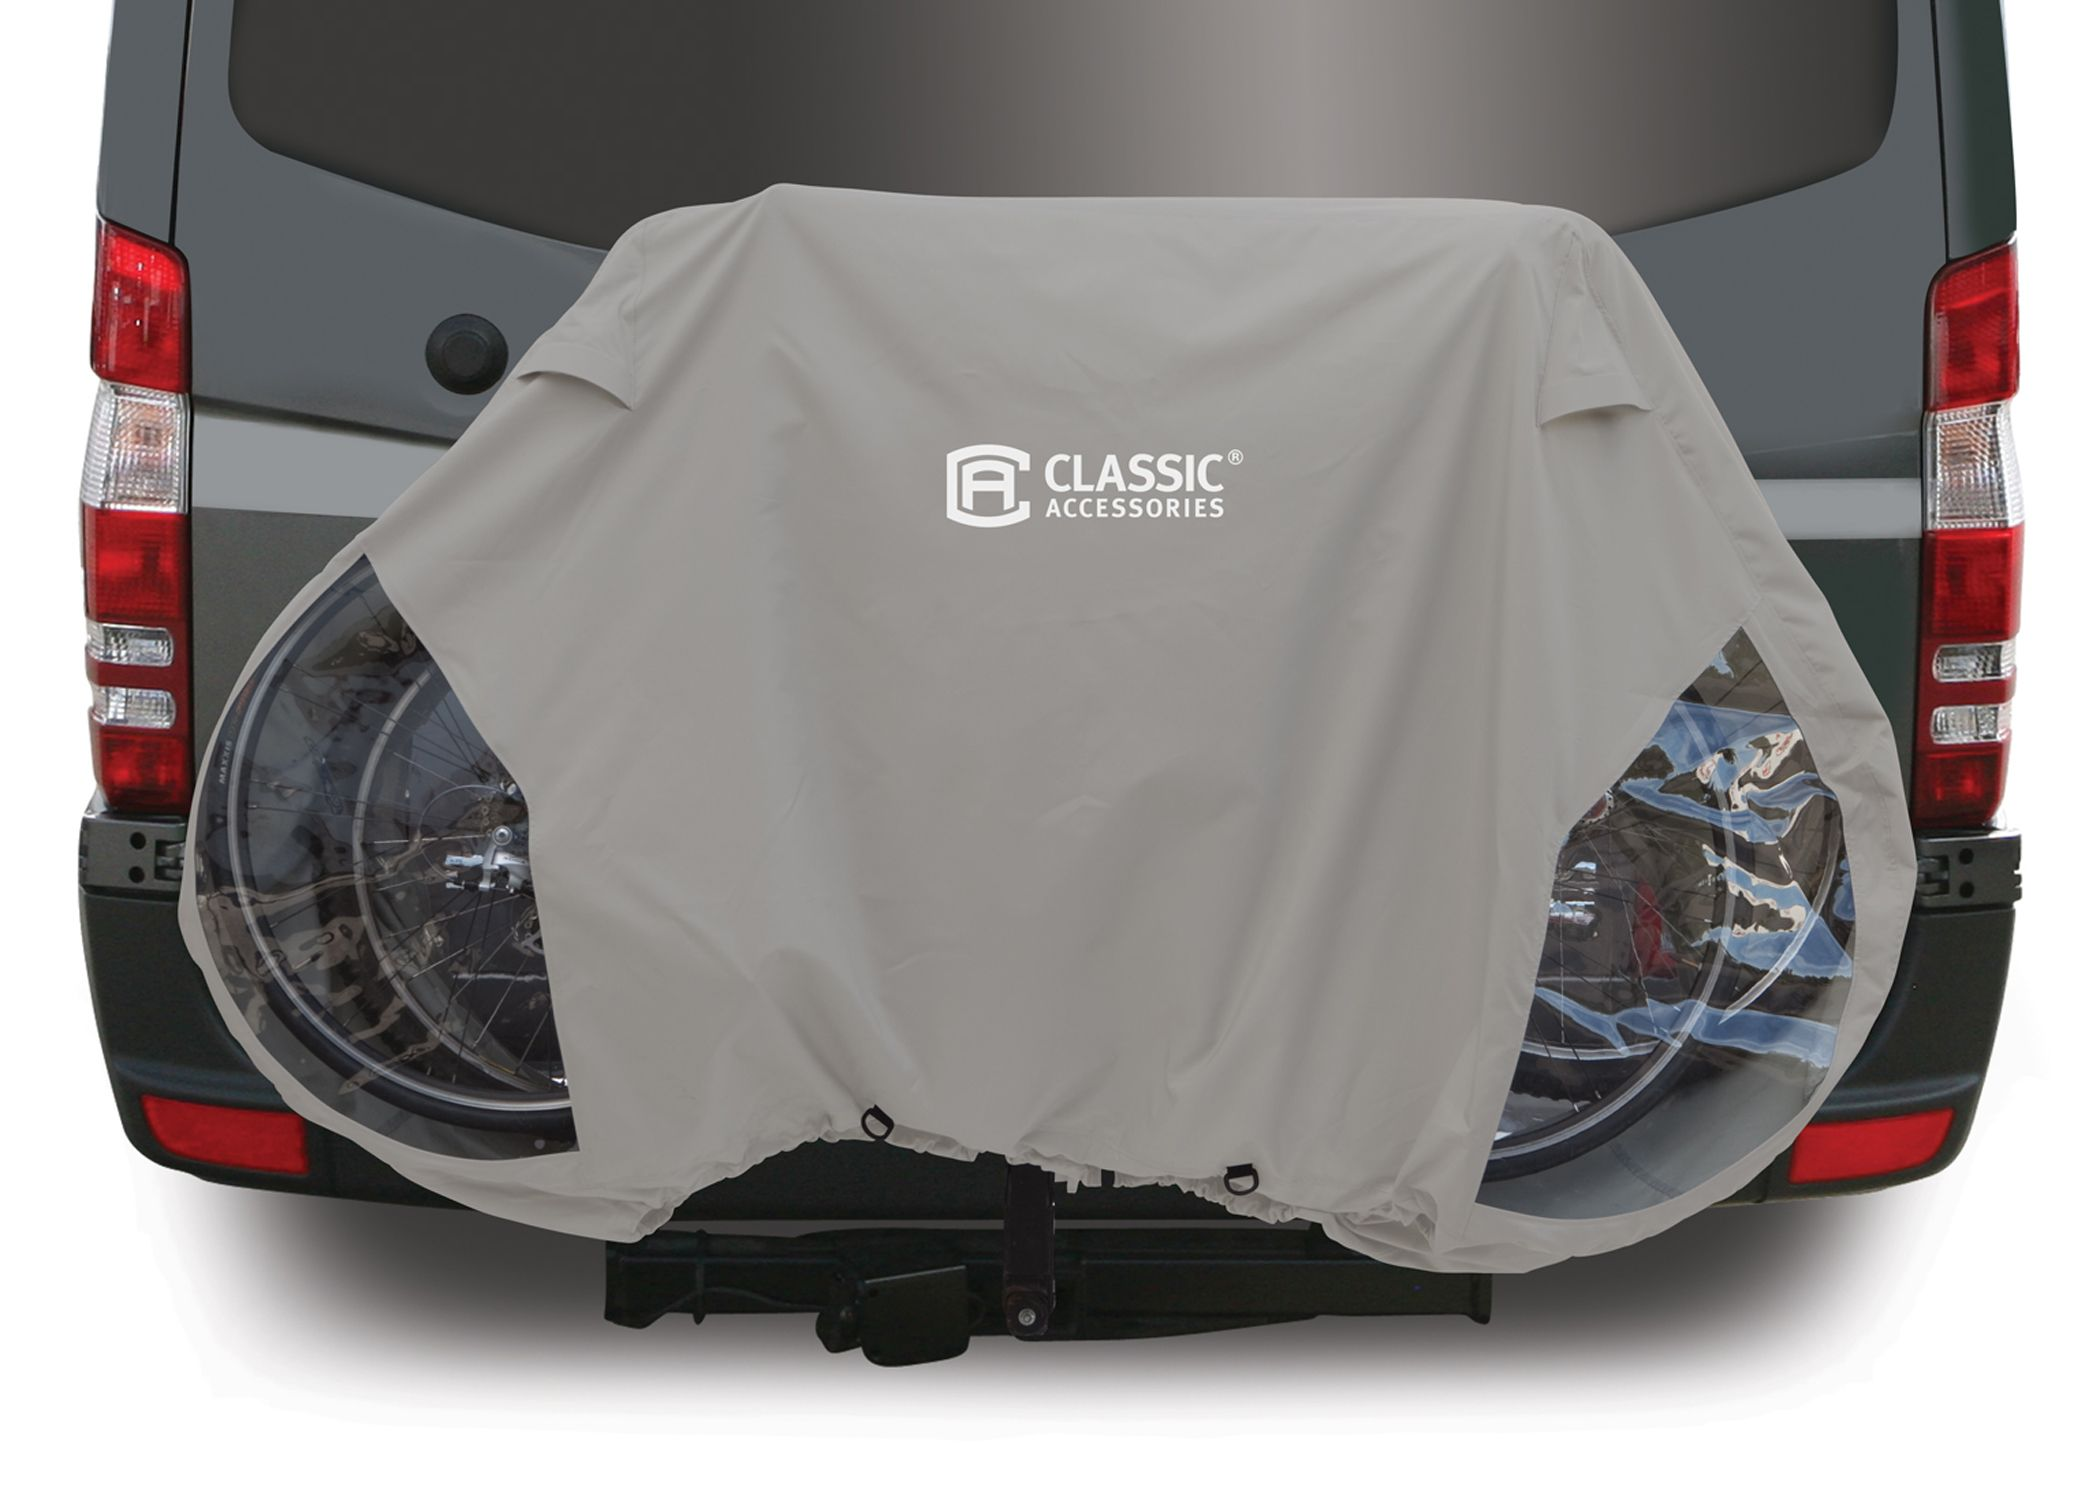 Automobile Car Seat Covers Protective RV Cover for up to 3 Bikes mounted on the Hitch Rack